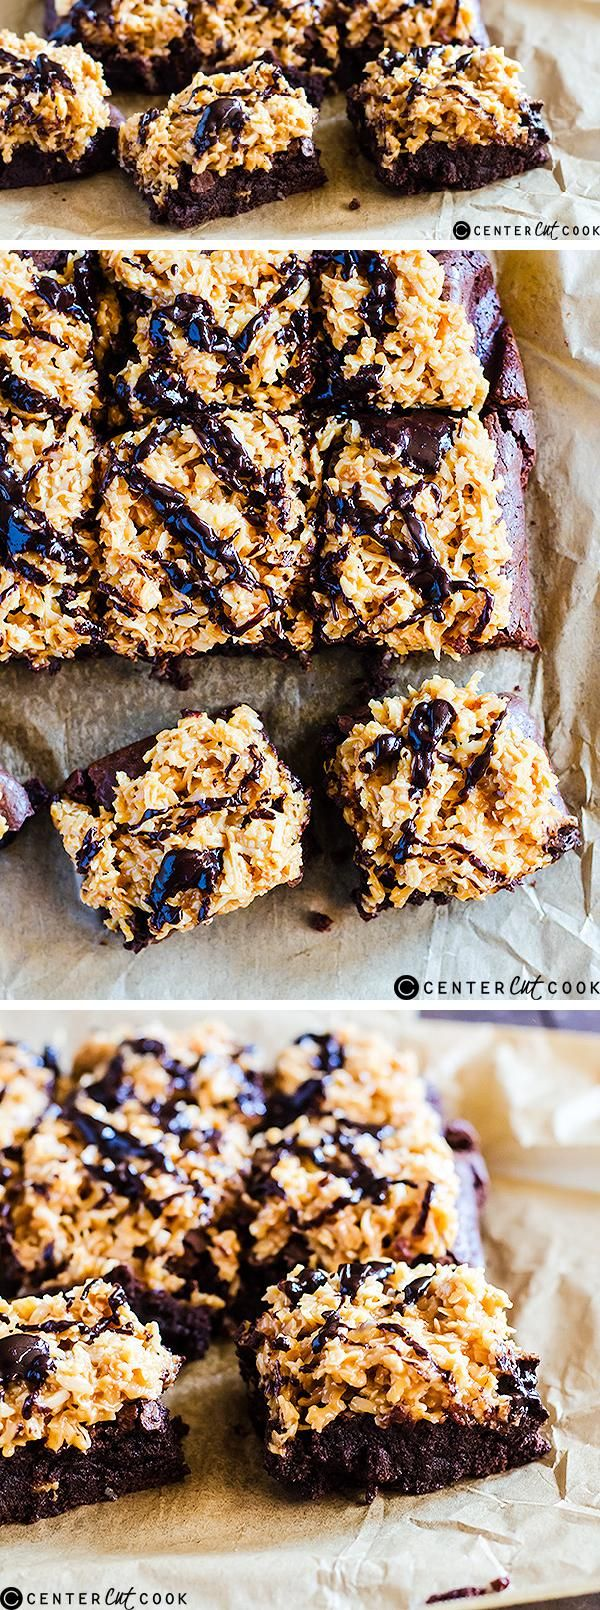 Rich FUDGY BROWNIES are topped with an irresistible caramel coconut topping to recreate your favorite Girl Scout cookie in brownie form. These SAMOA brownies are easy to make and are a true crowd pleaser!